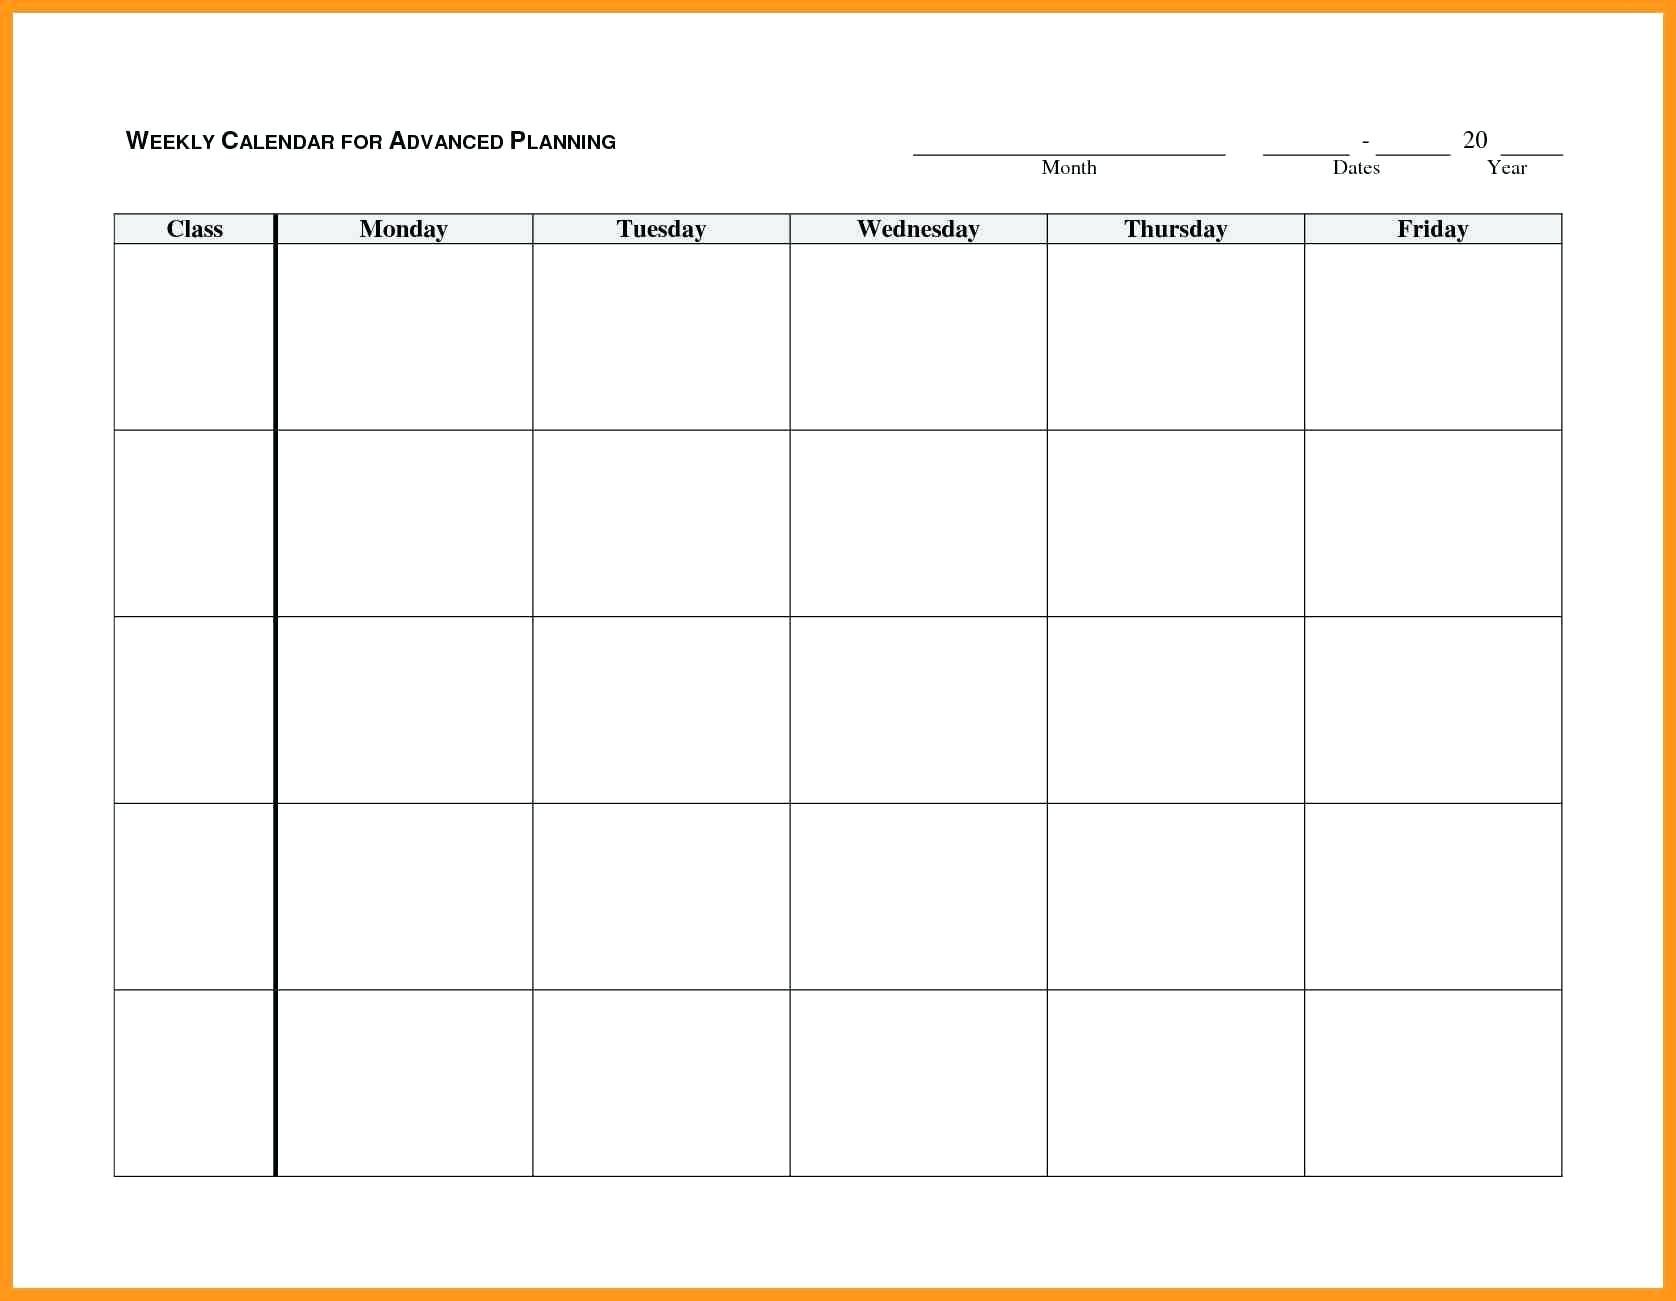 Blank Weekly Ndar Monday Through Friday Template Word Free Printable with Blank Calendar Template Monday Friday